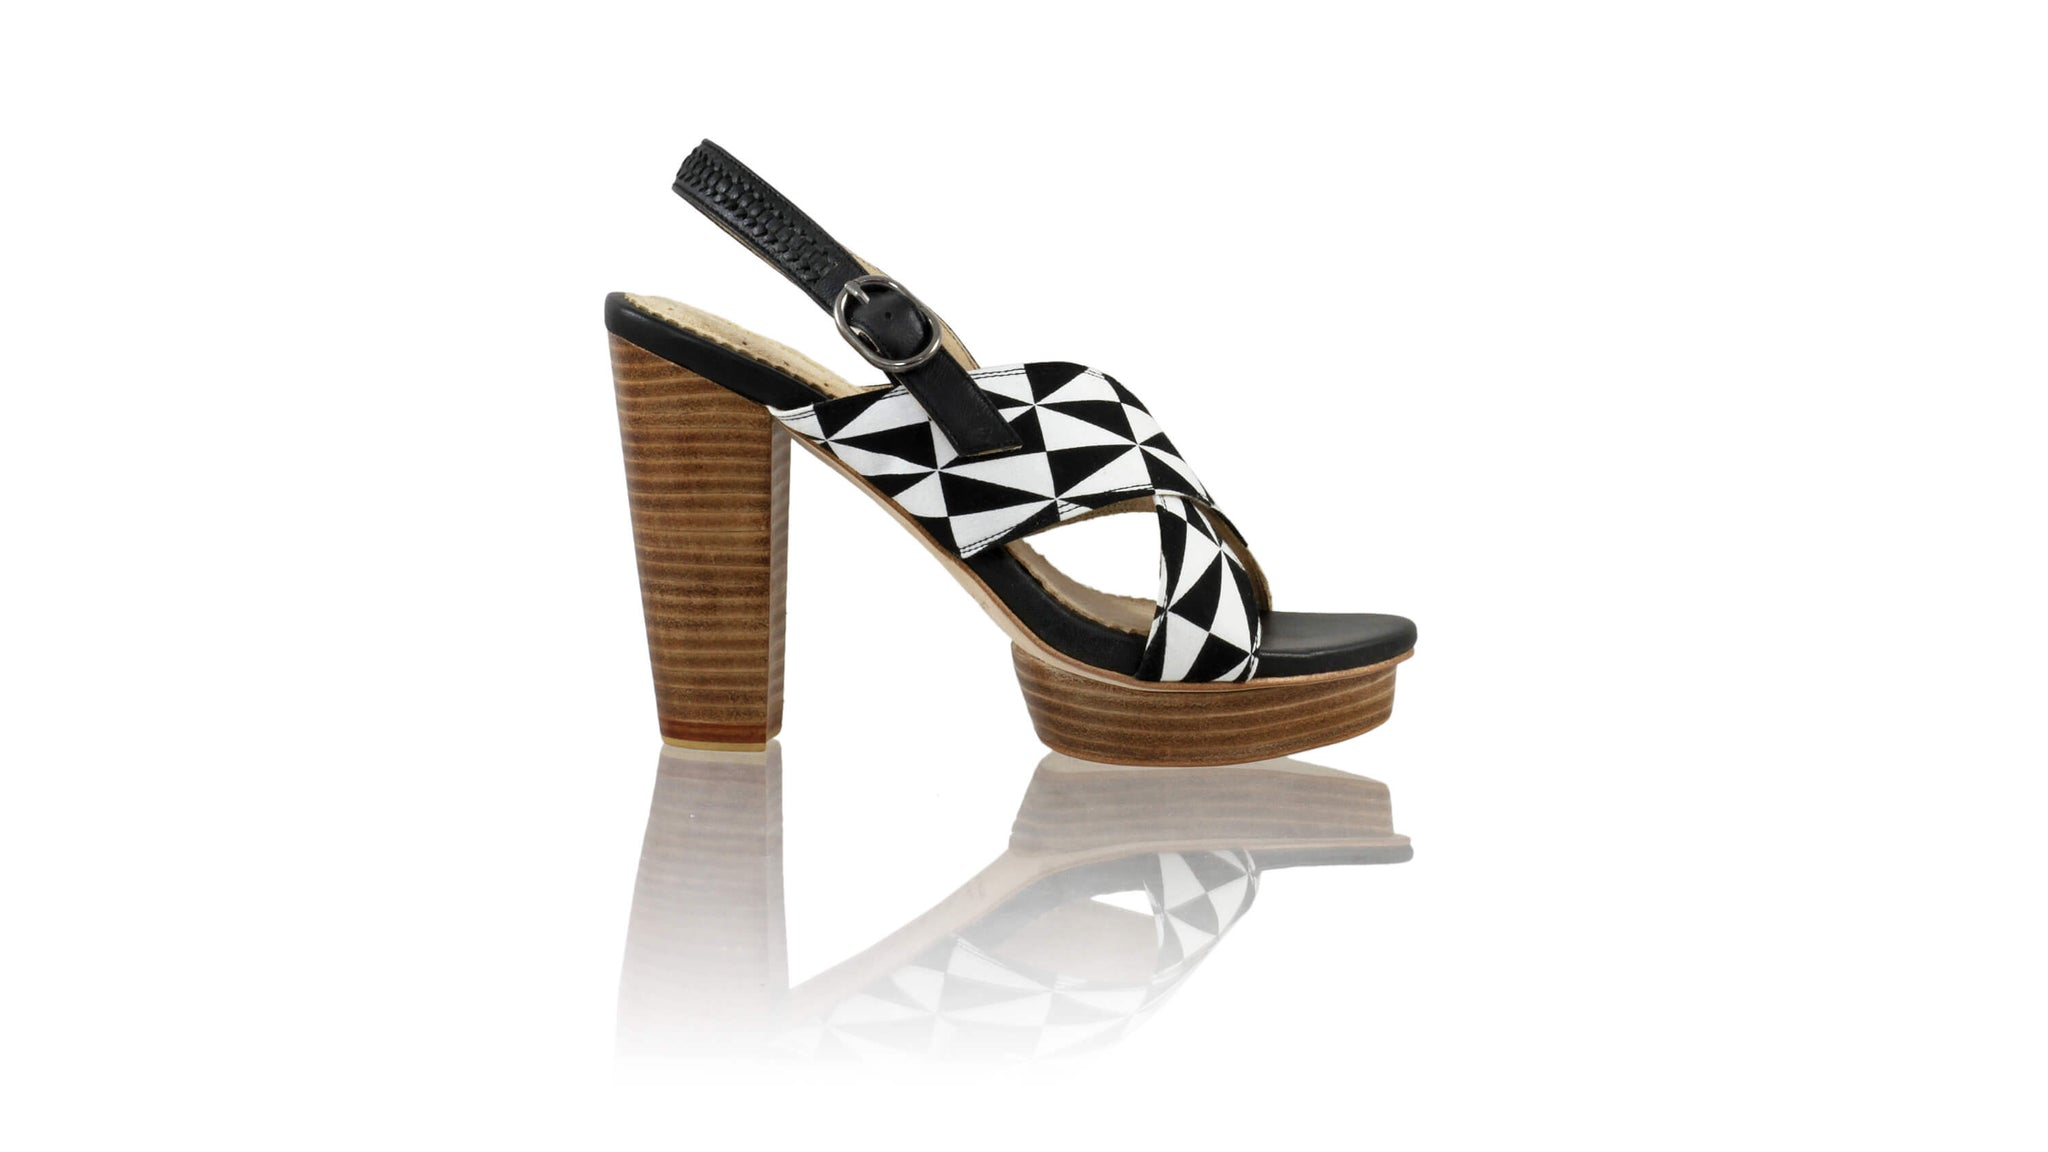 Leather-shoes-Ava 115mm WH PF - Black & Black White Triangle Motif-sandals higheel-NILUH DJELANTIK-NILUH DJELANTIK